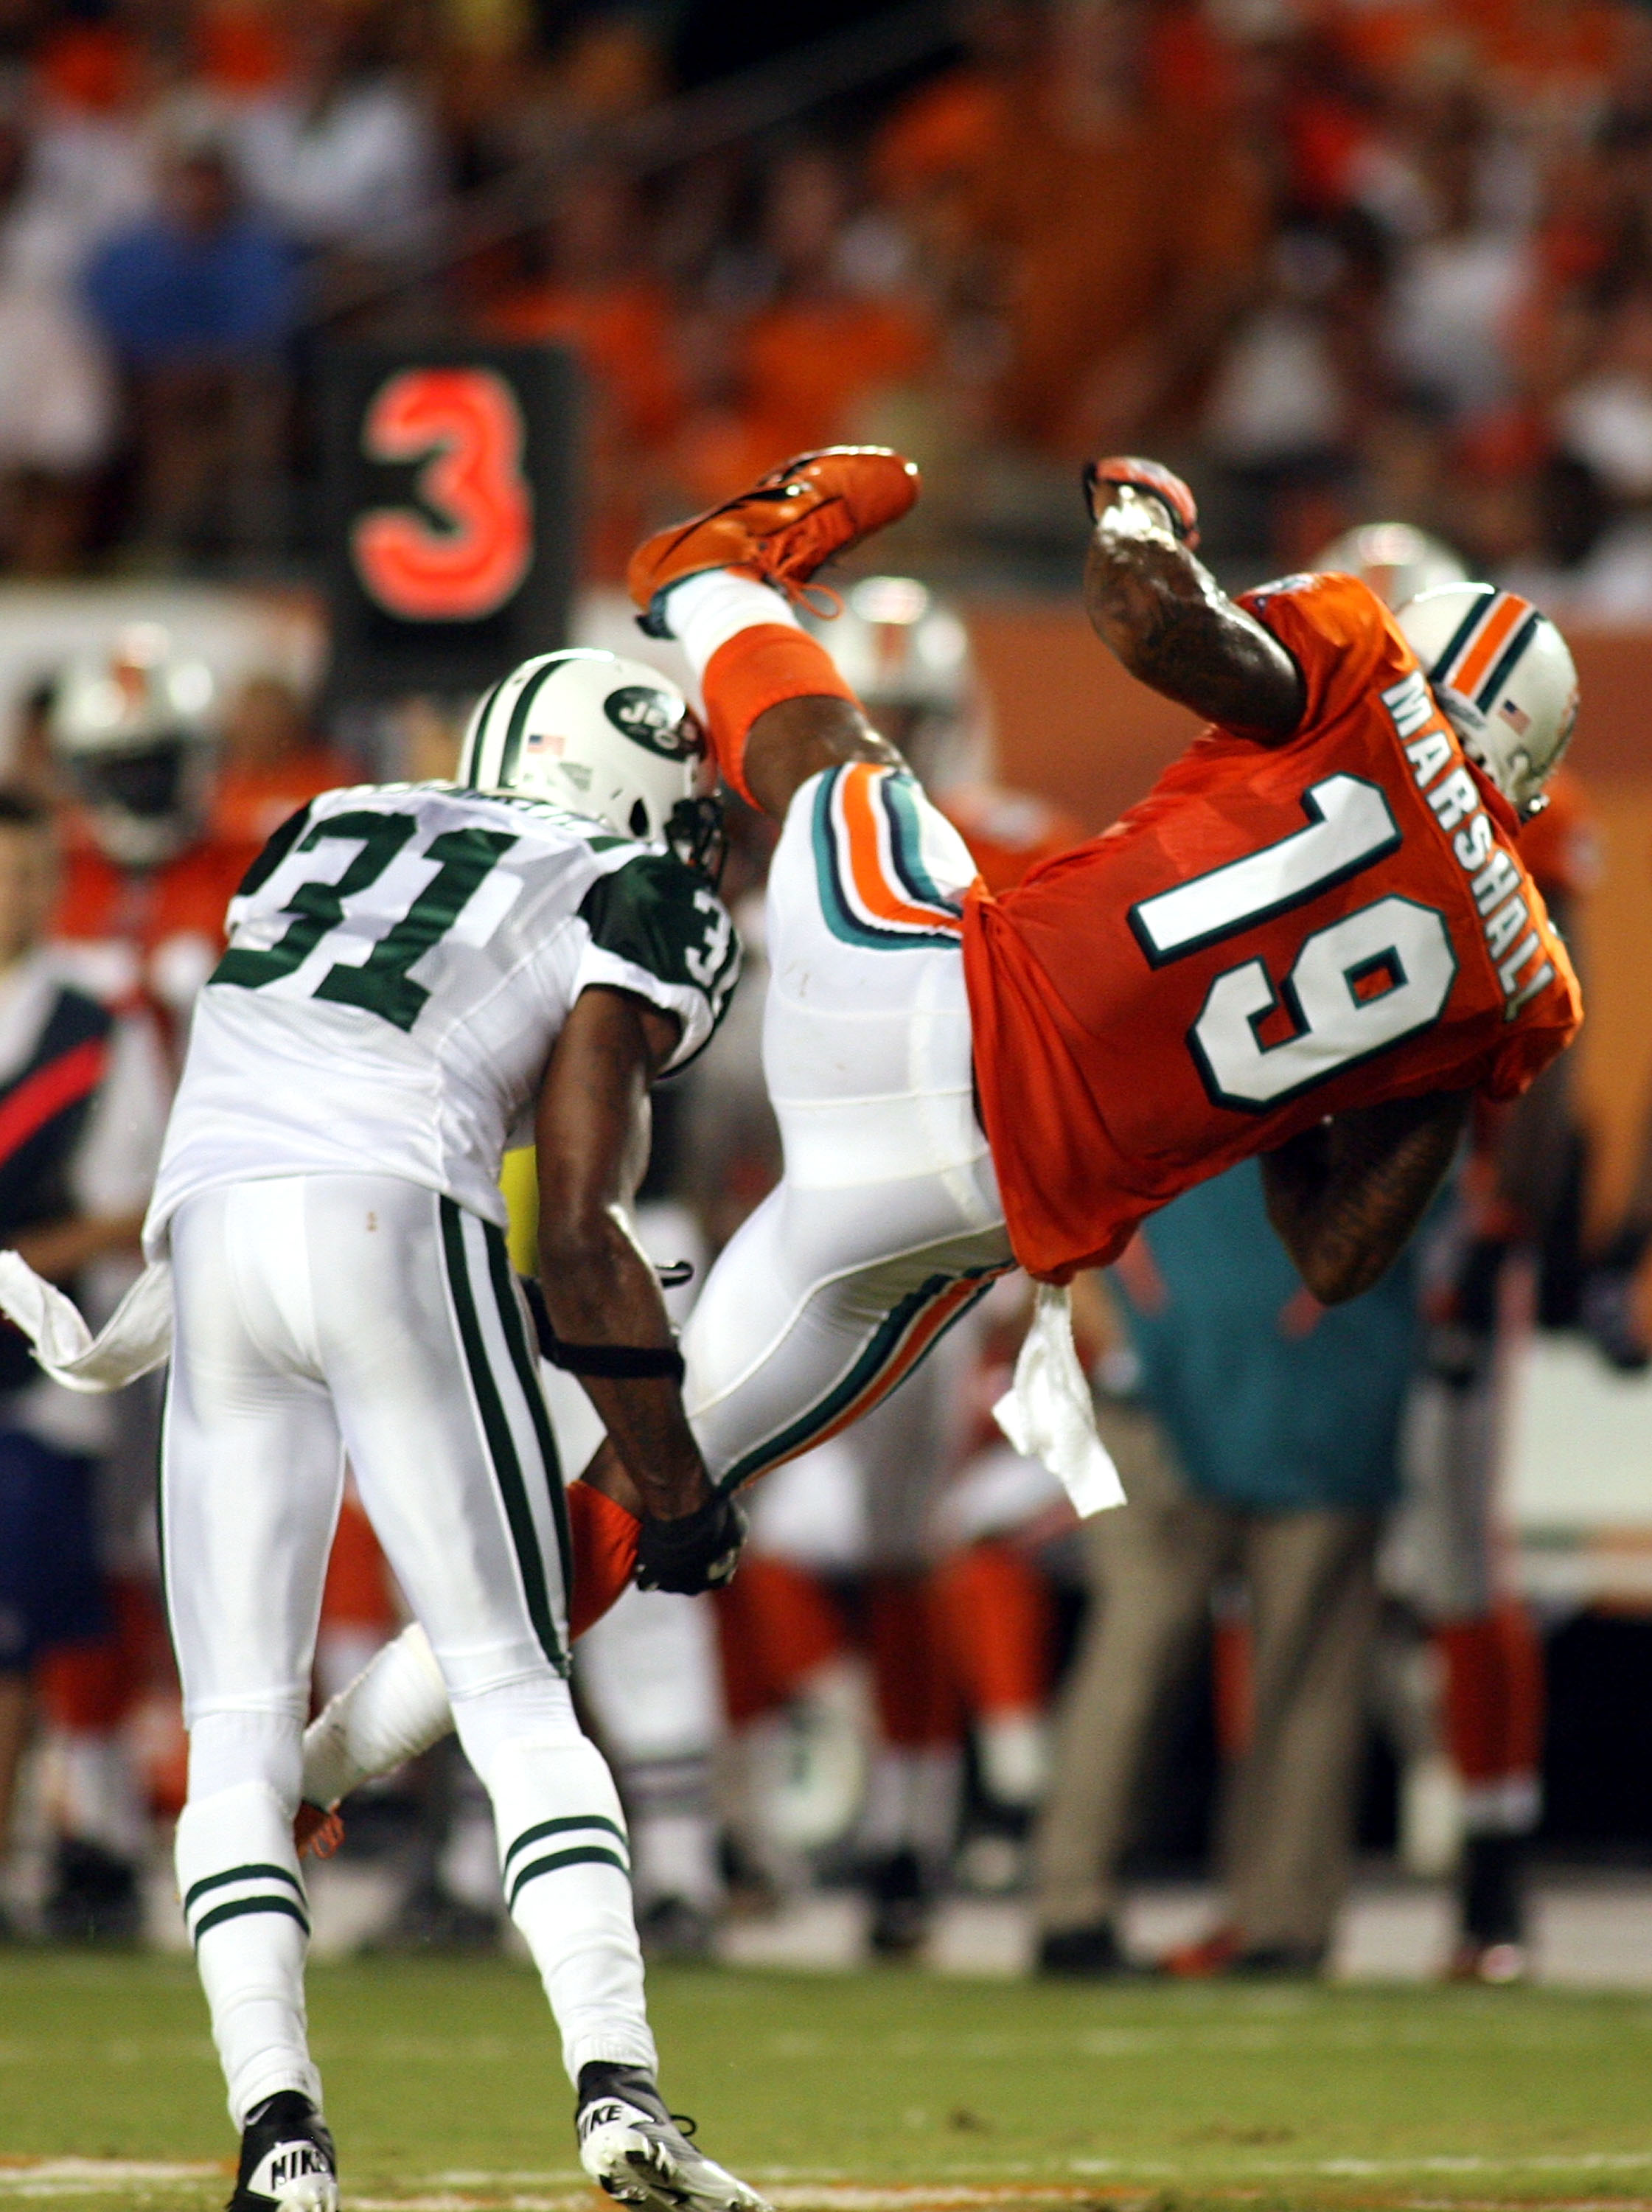 MIAMI - SEPTEMBER 26: Receiver Brandon Marshall #19 of the Miami Dolphins makes a catch against the New York Jets at Sun Life Stadium on September 26, 2010 in Miami, Florida. (Photo by Marc Serota/Getty Images)